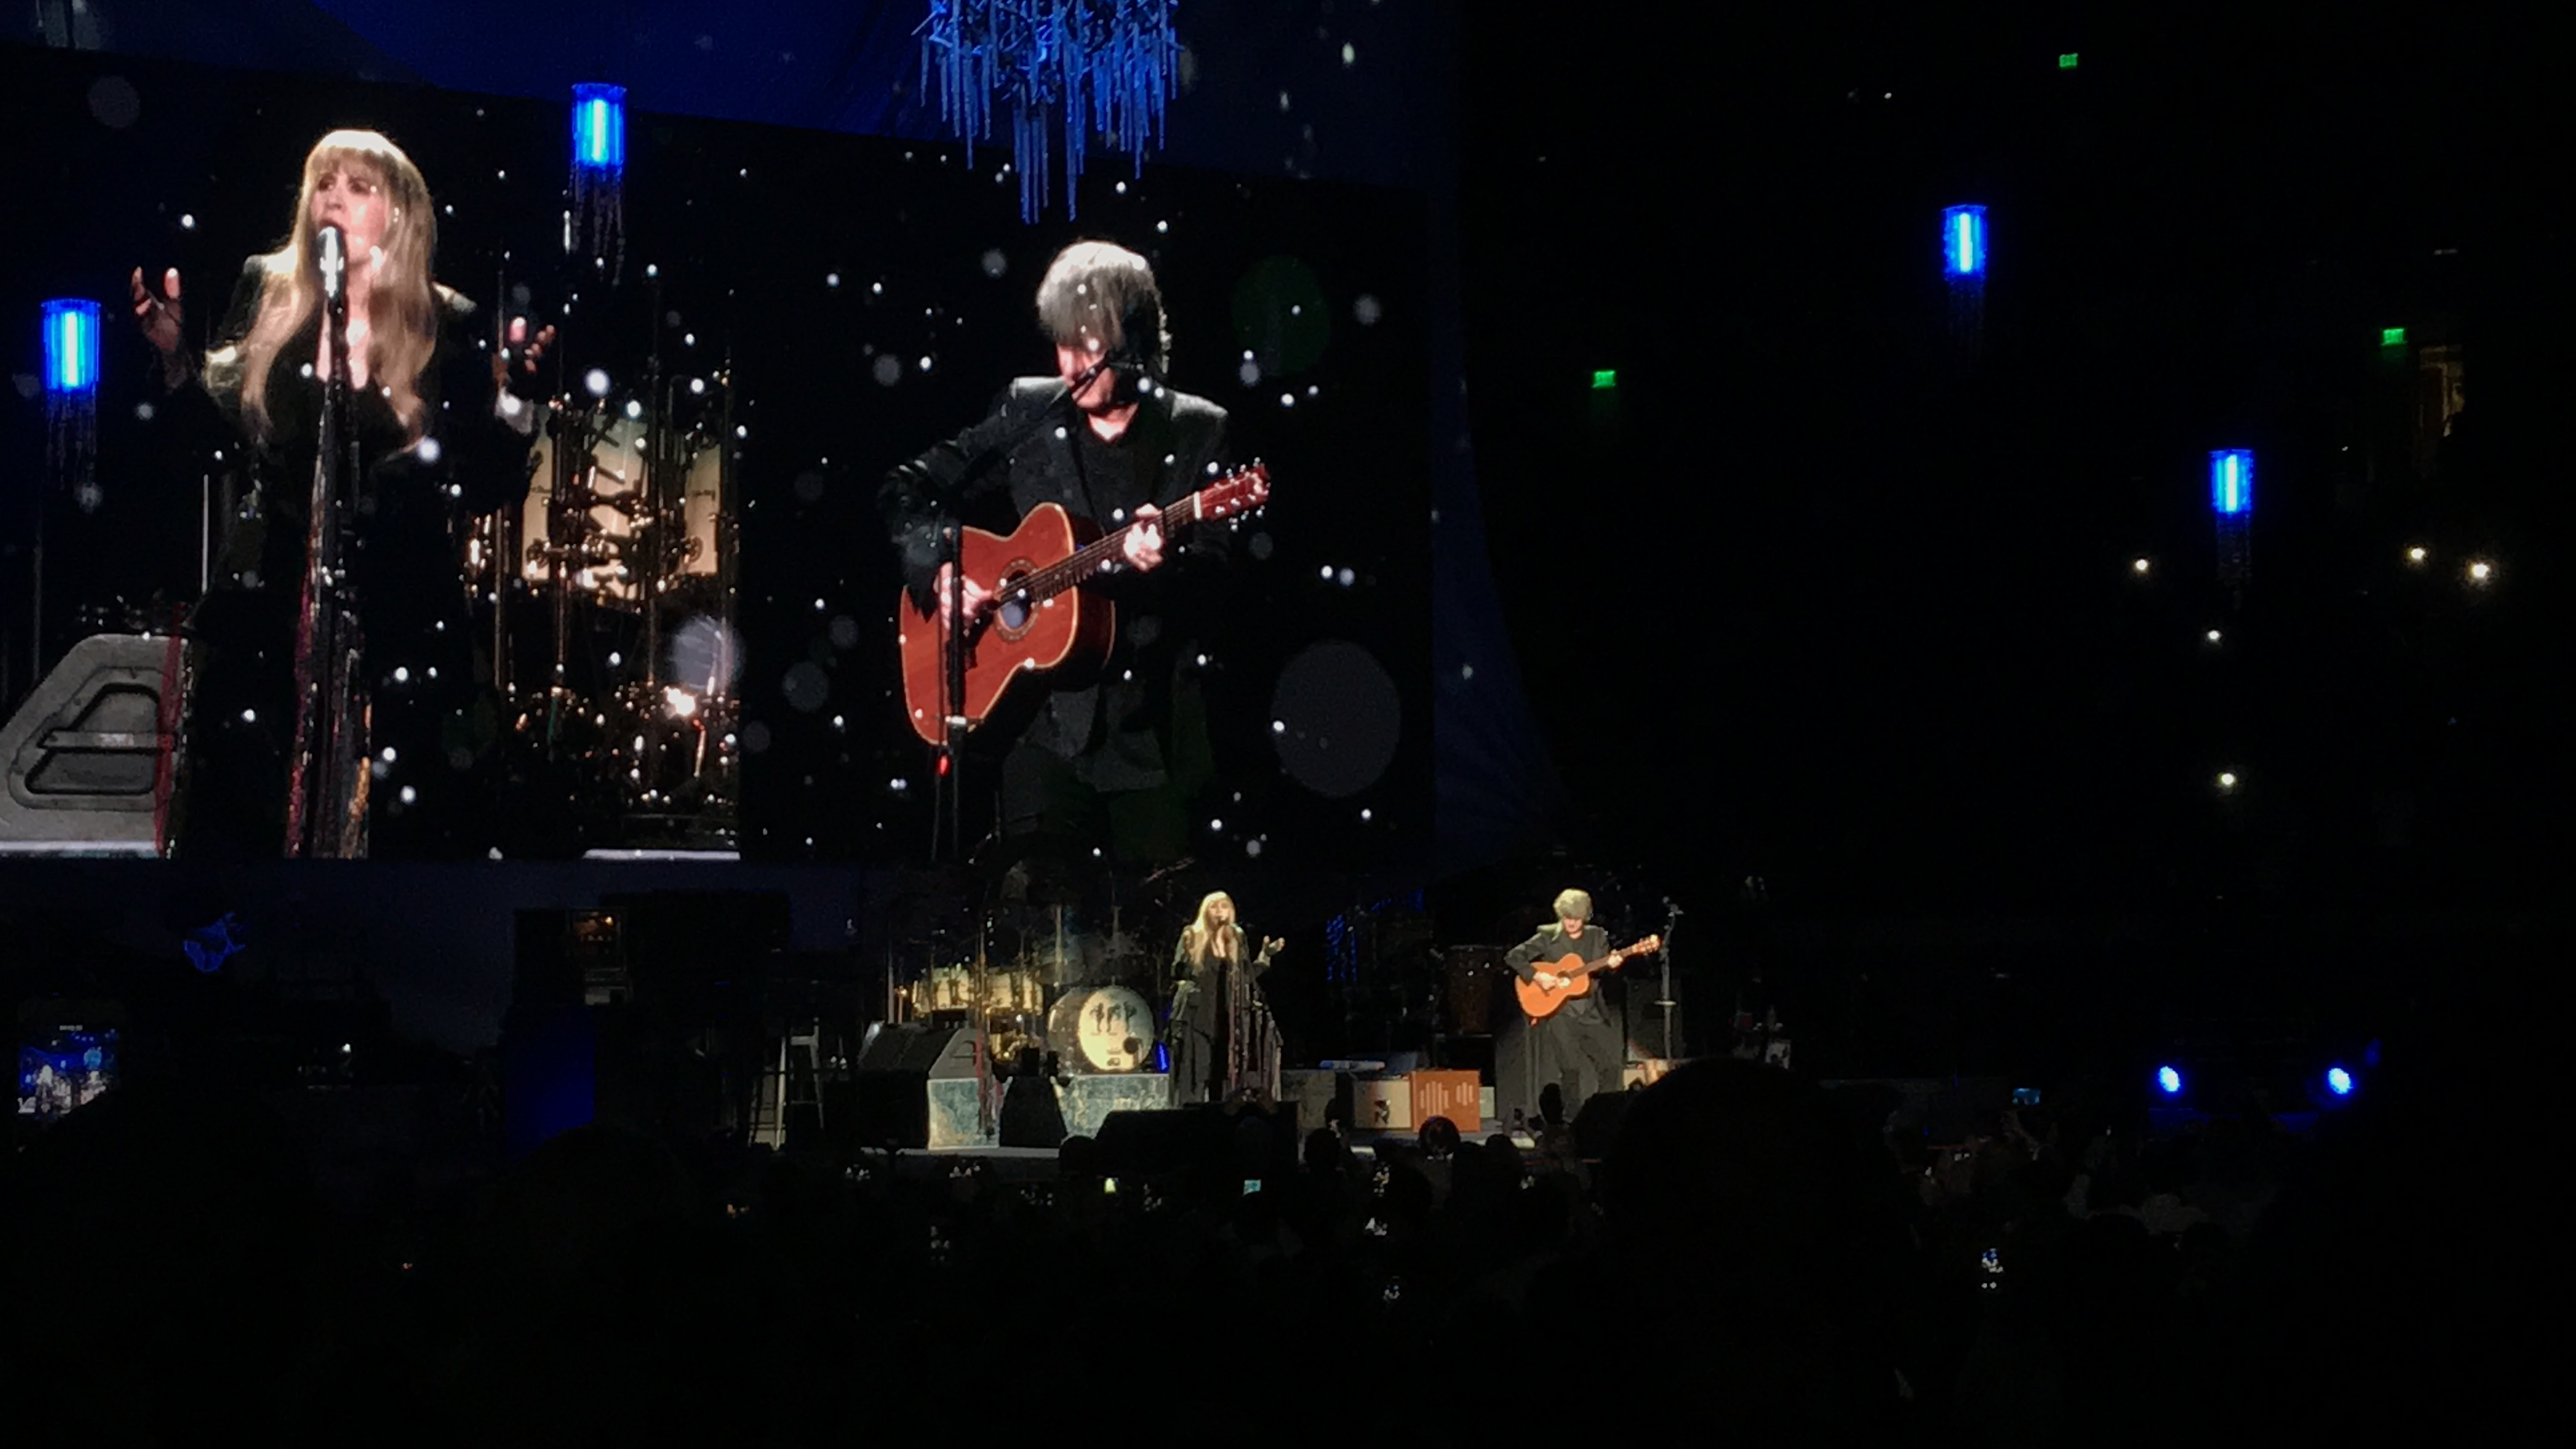 Stevie Nicks sings with her arms raised while Neil Finn is to the right playing guitar.